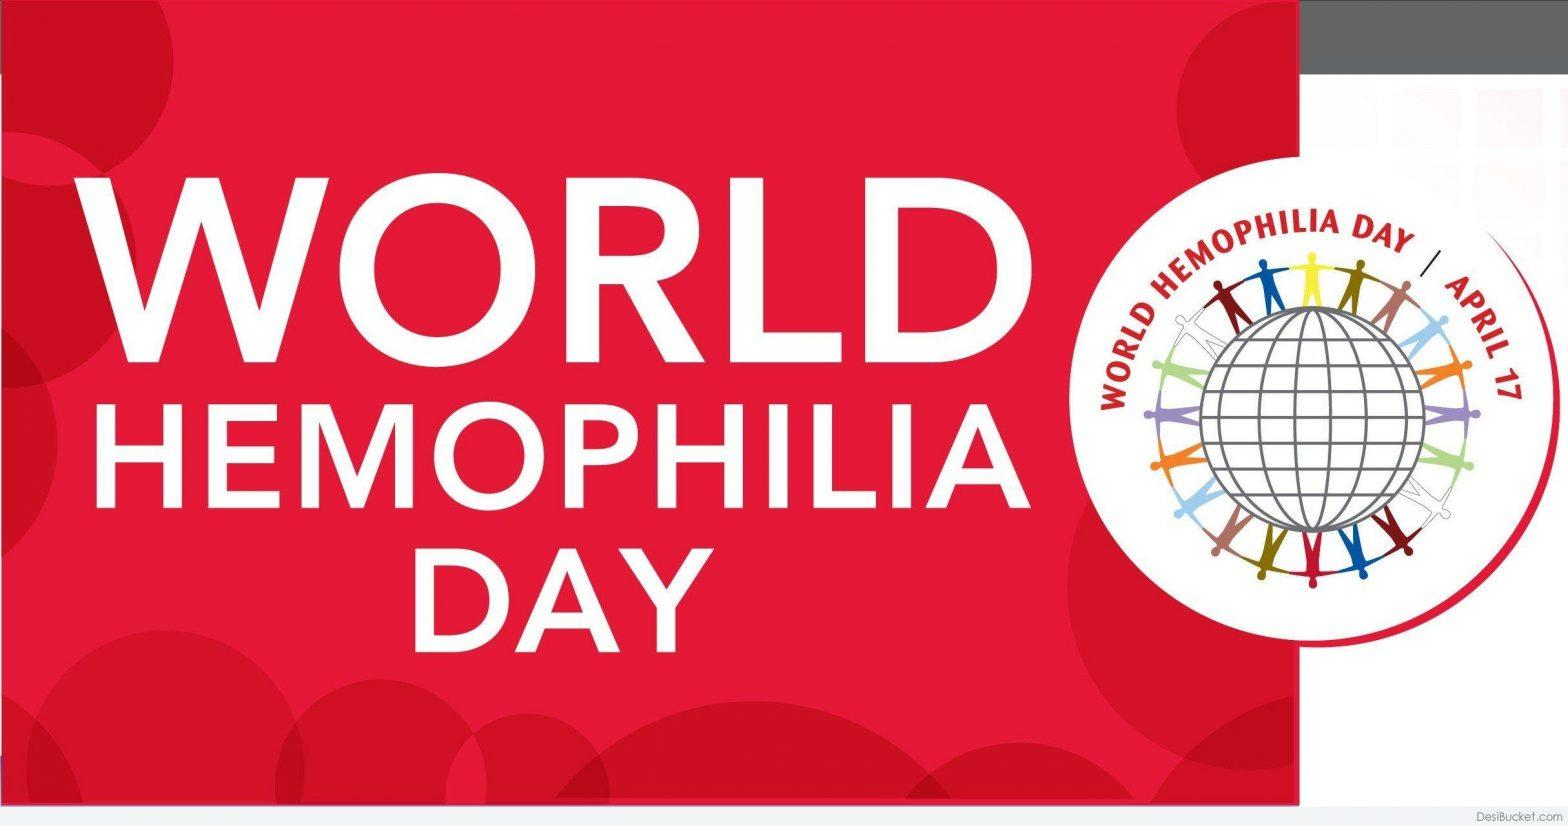 World Hemophilia Day Observed Globally On 17 April